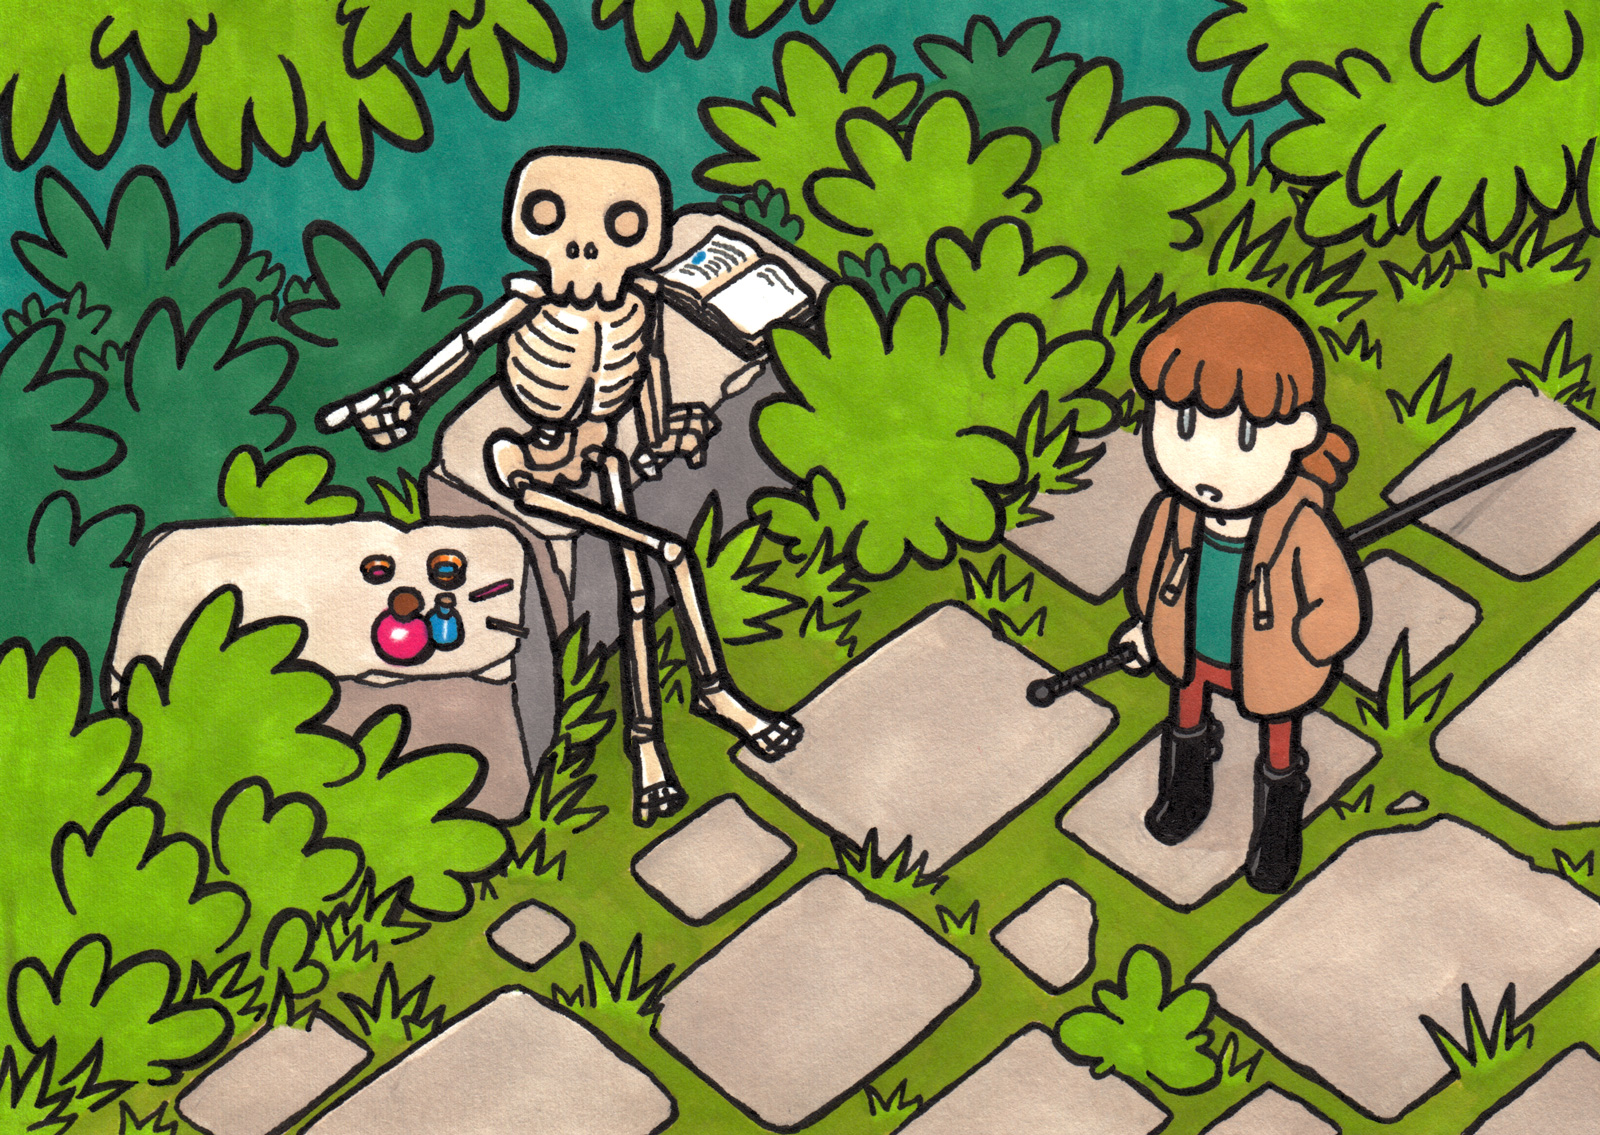 On an overgrown stone path, a friendly skeleton sets its journal aside and points the way.